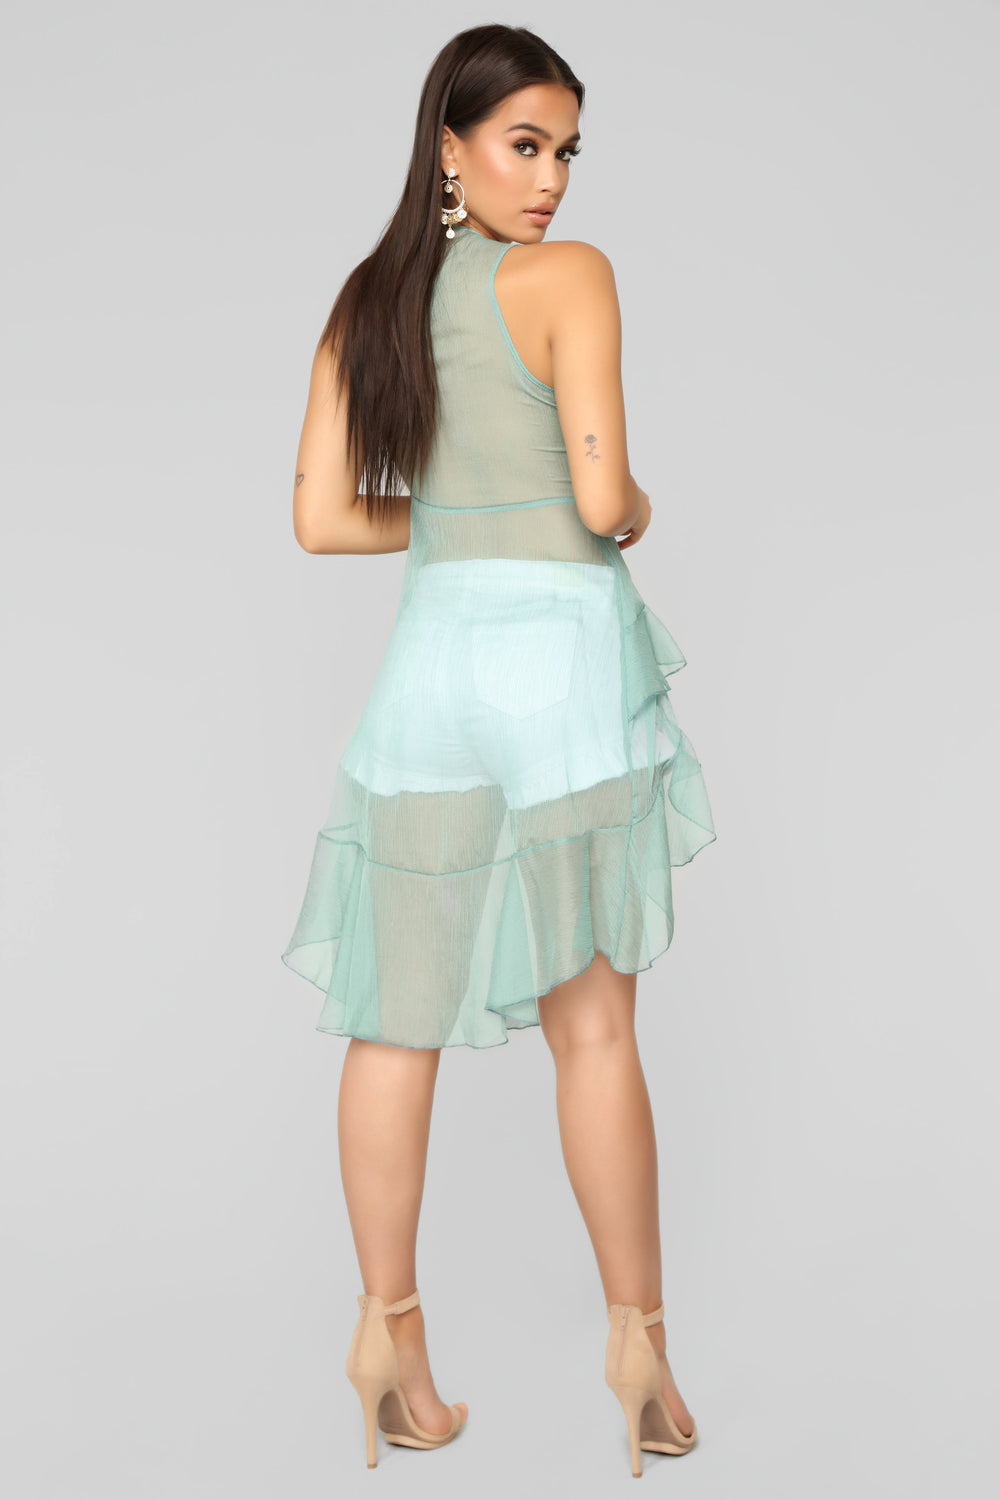 Harpers Song Ruffle Top - Sage